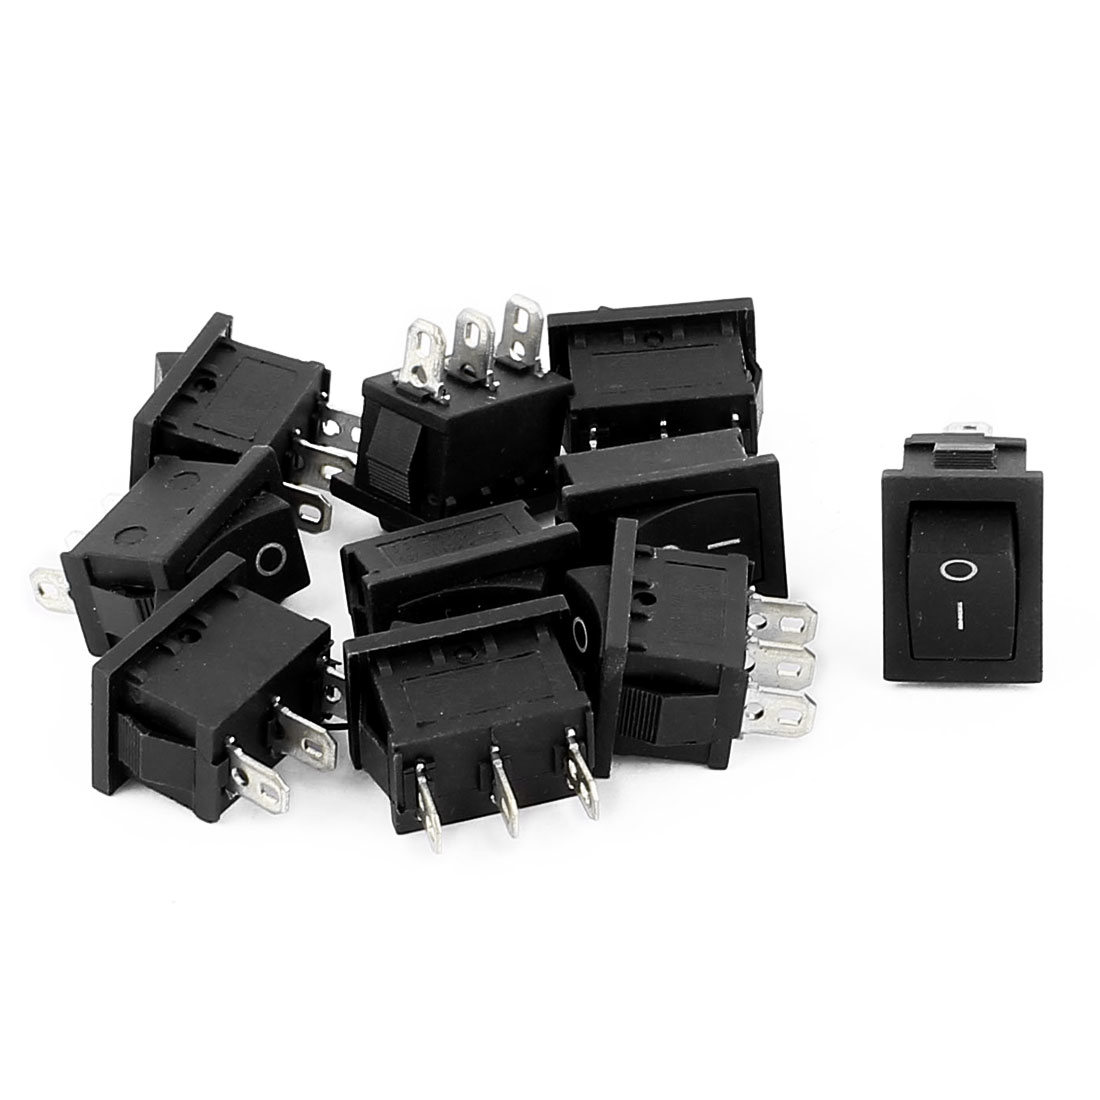 AC 250V 6A 125V 10A 2 Position 3 Terminals SPDT Snap-in Rocker Boat Switch 10PCS